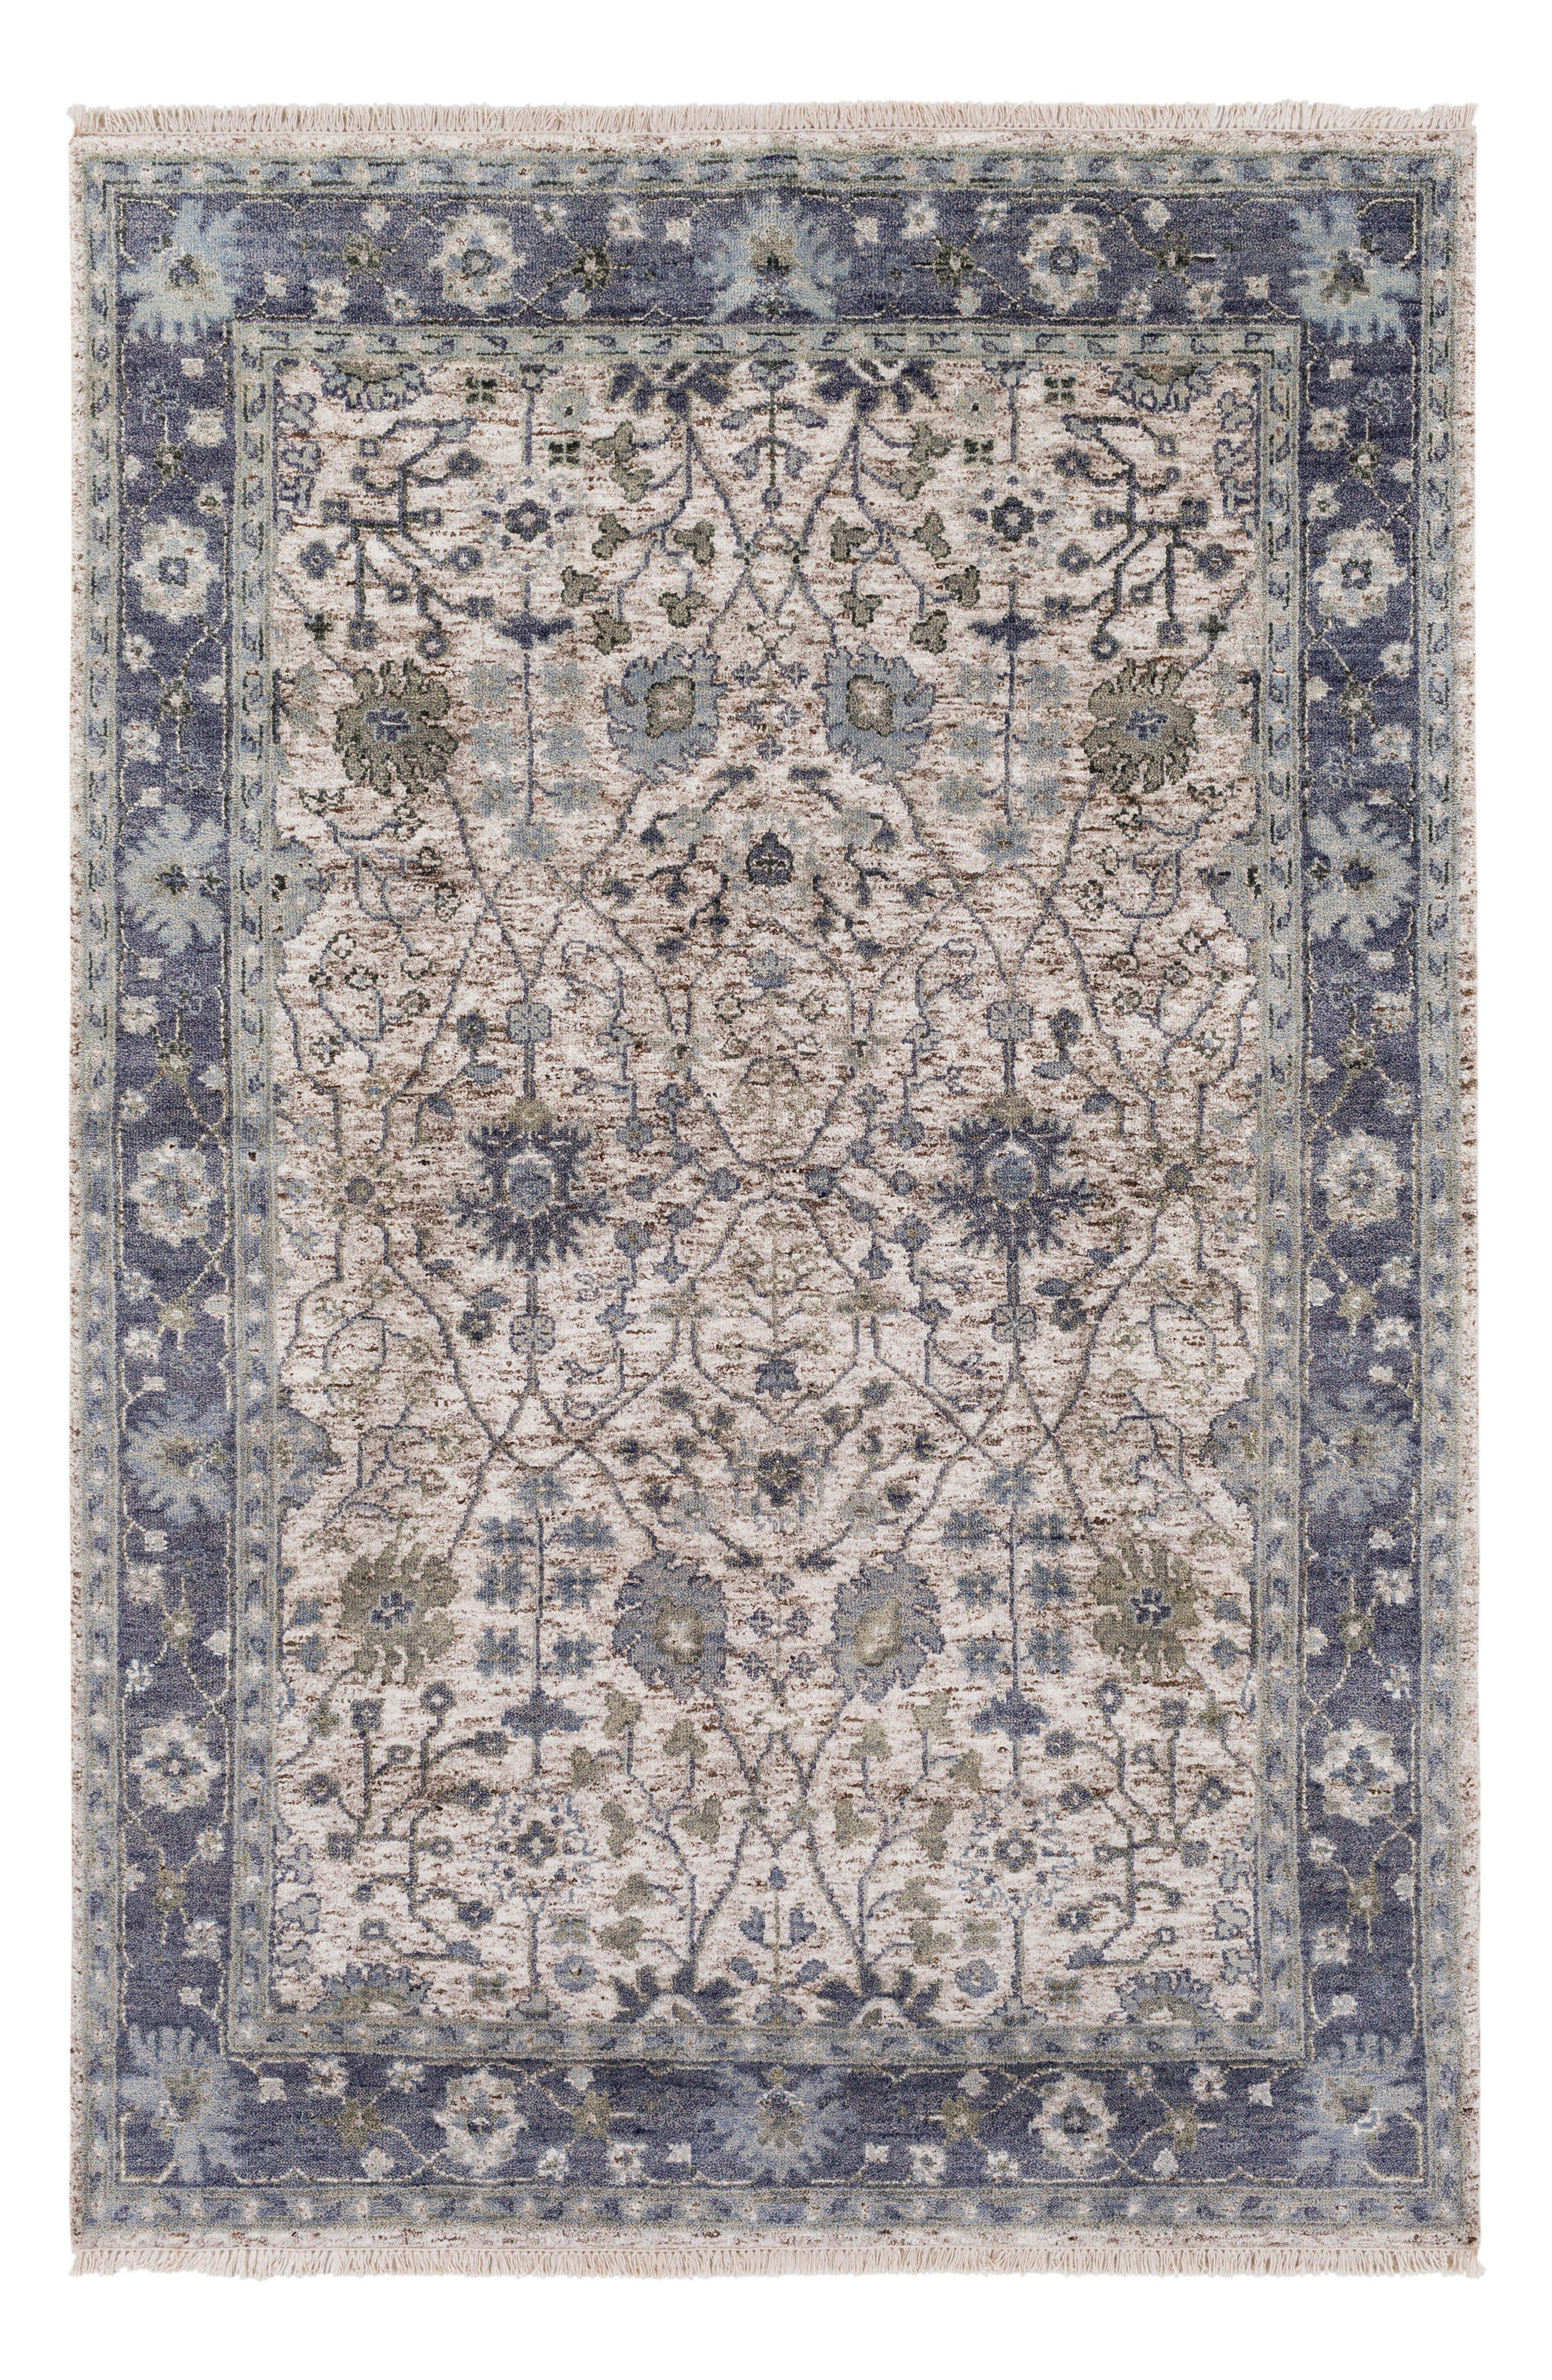 Maeva Classic Hand Knotted Rug,                         Main,                         color, 400